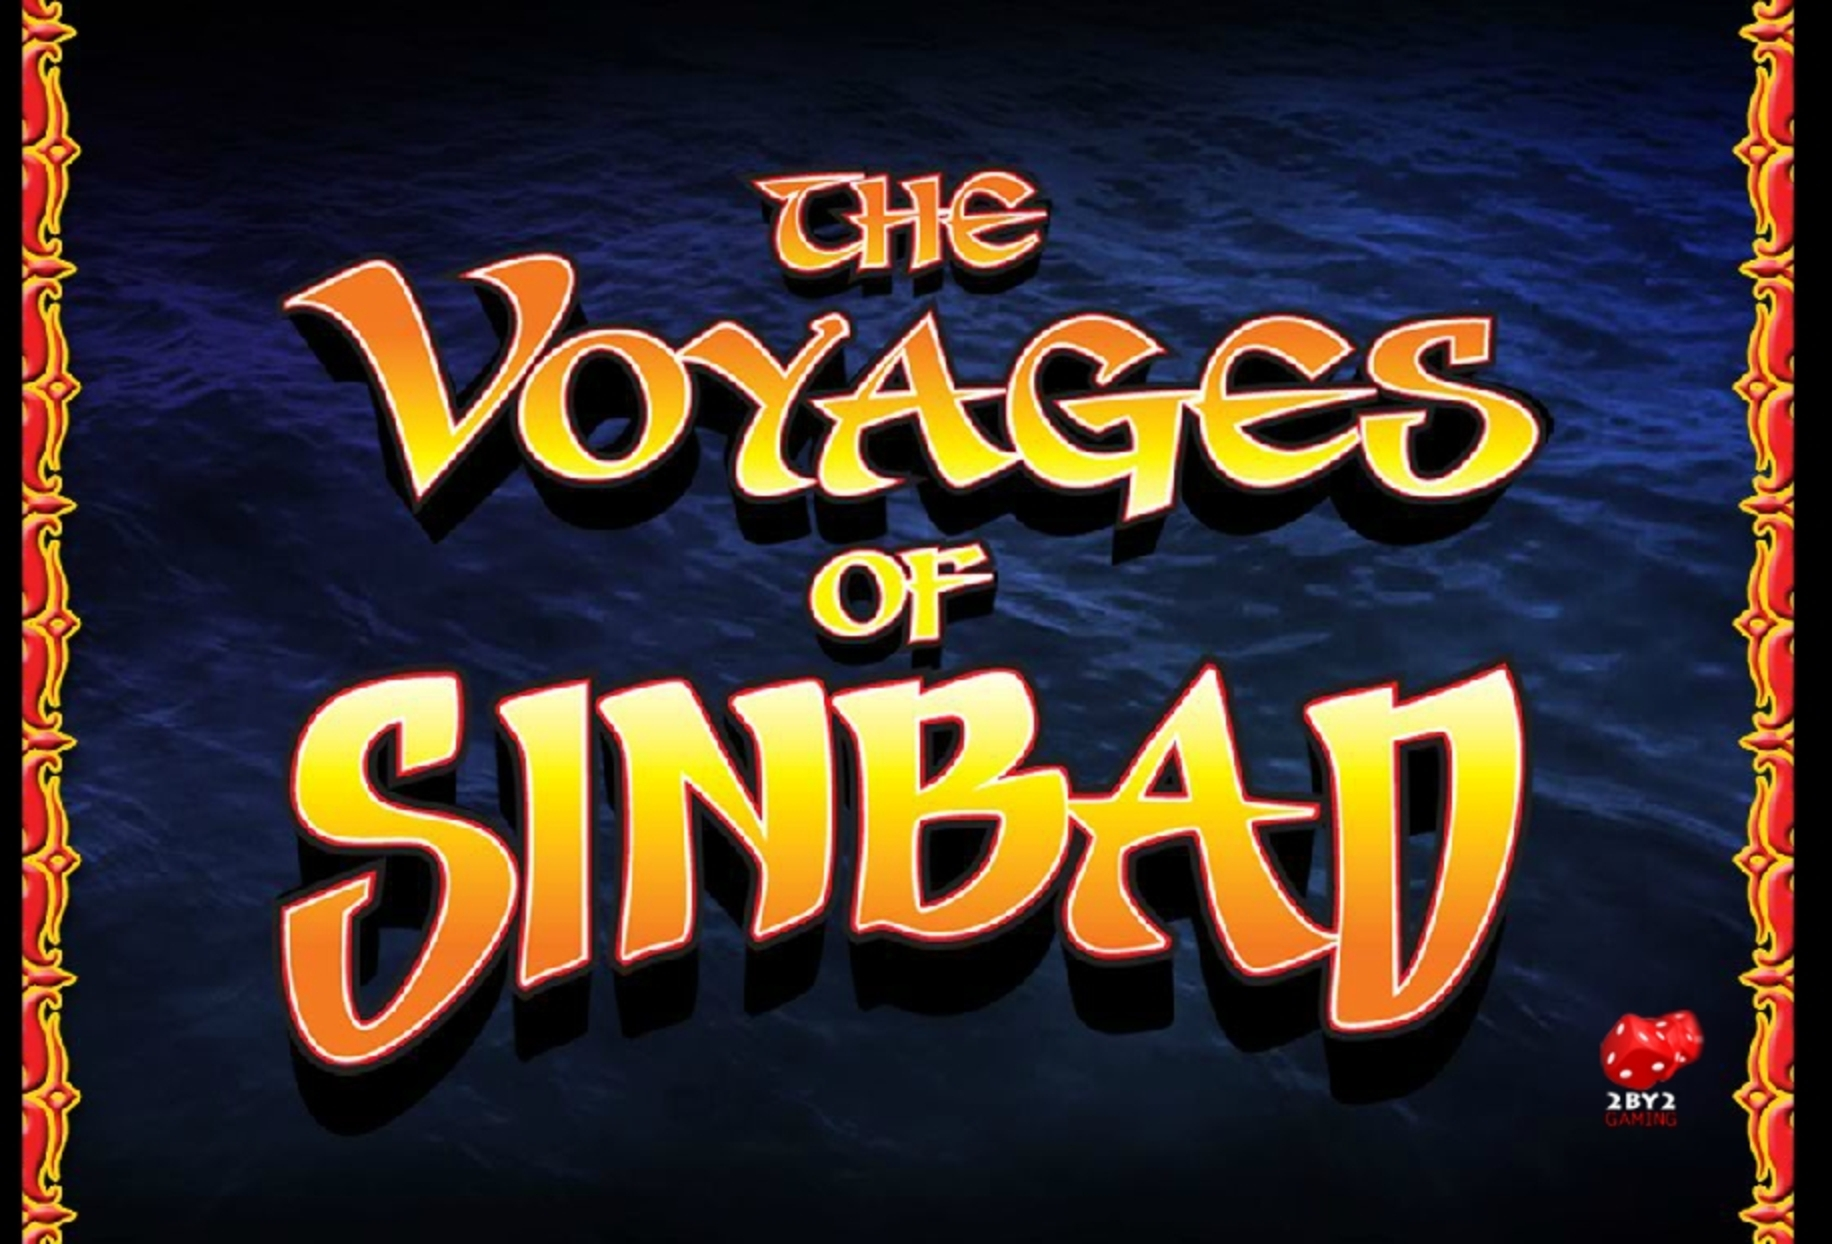 Play The voyages of Sinbad Free Casino Slot Game by 2 By 2 Gaming